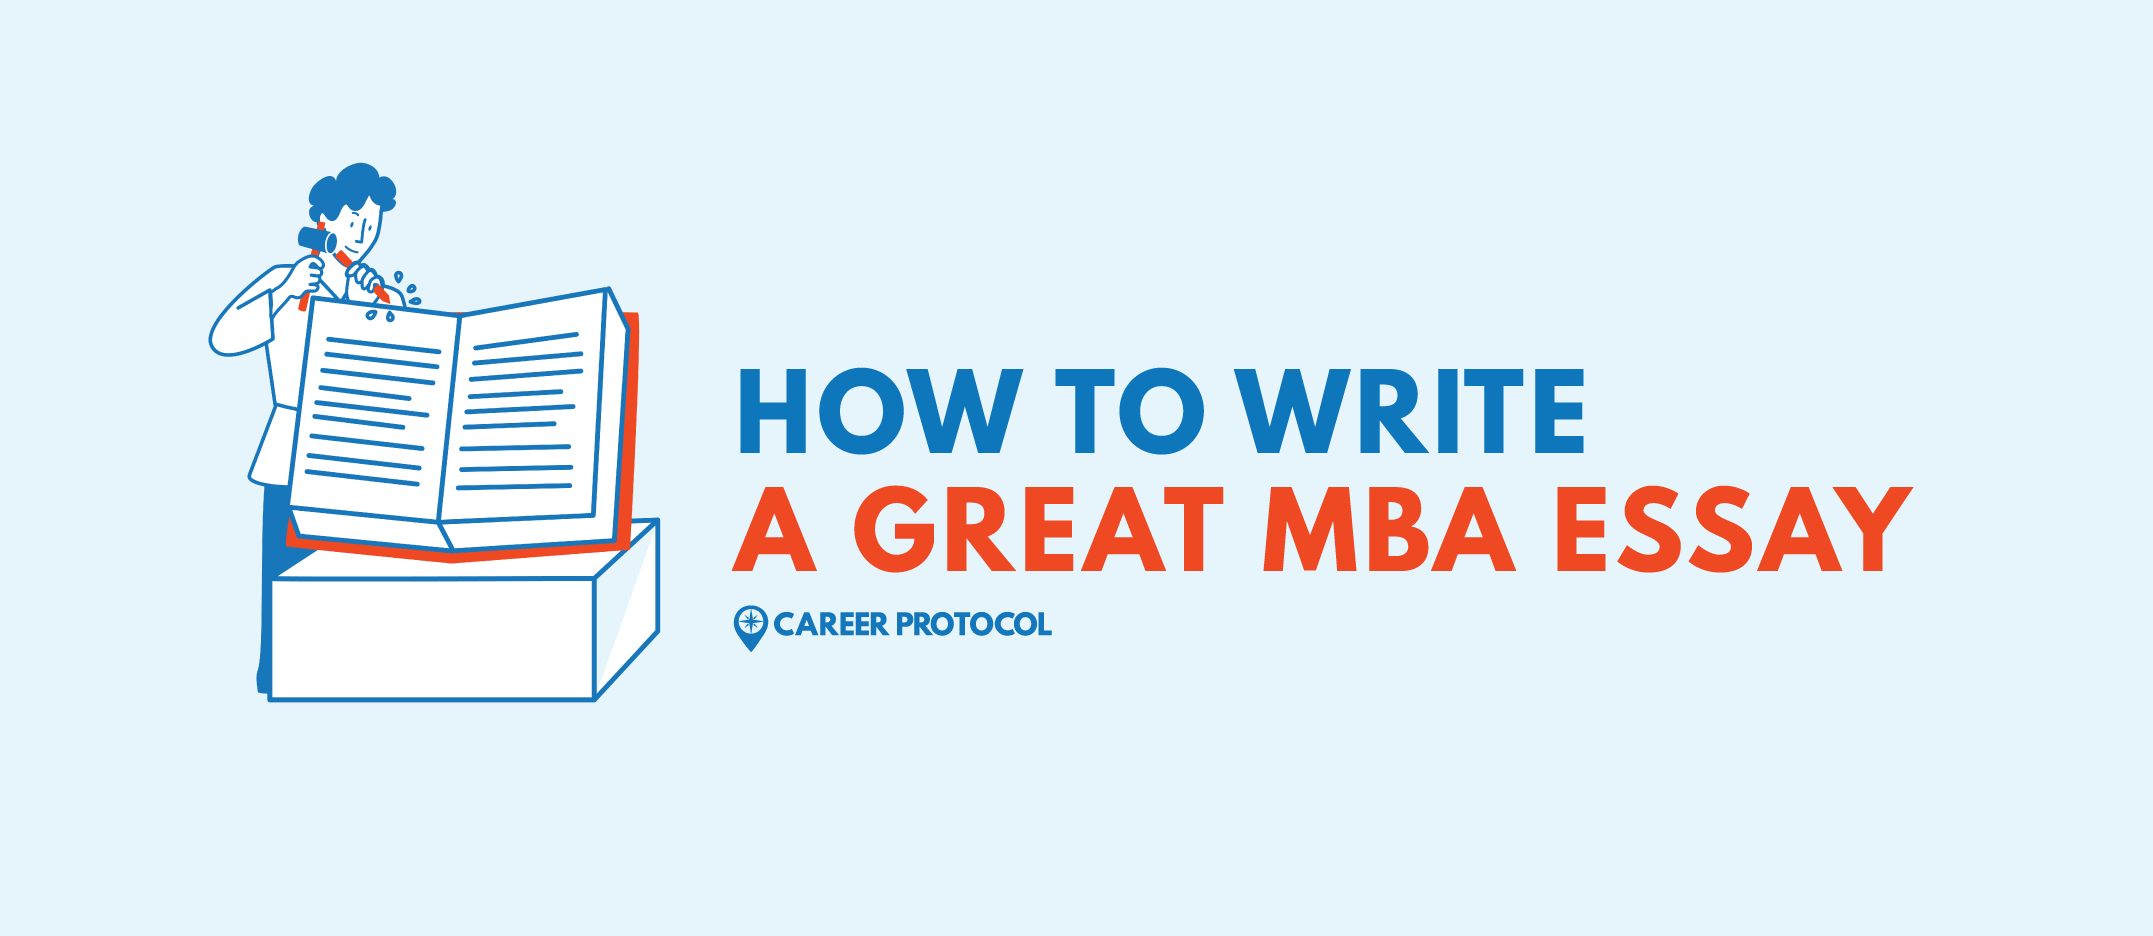 Write a great MBA essay